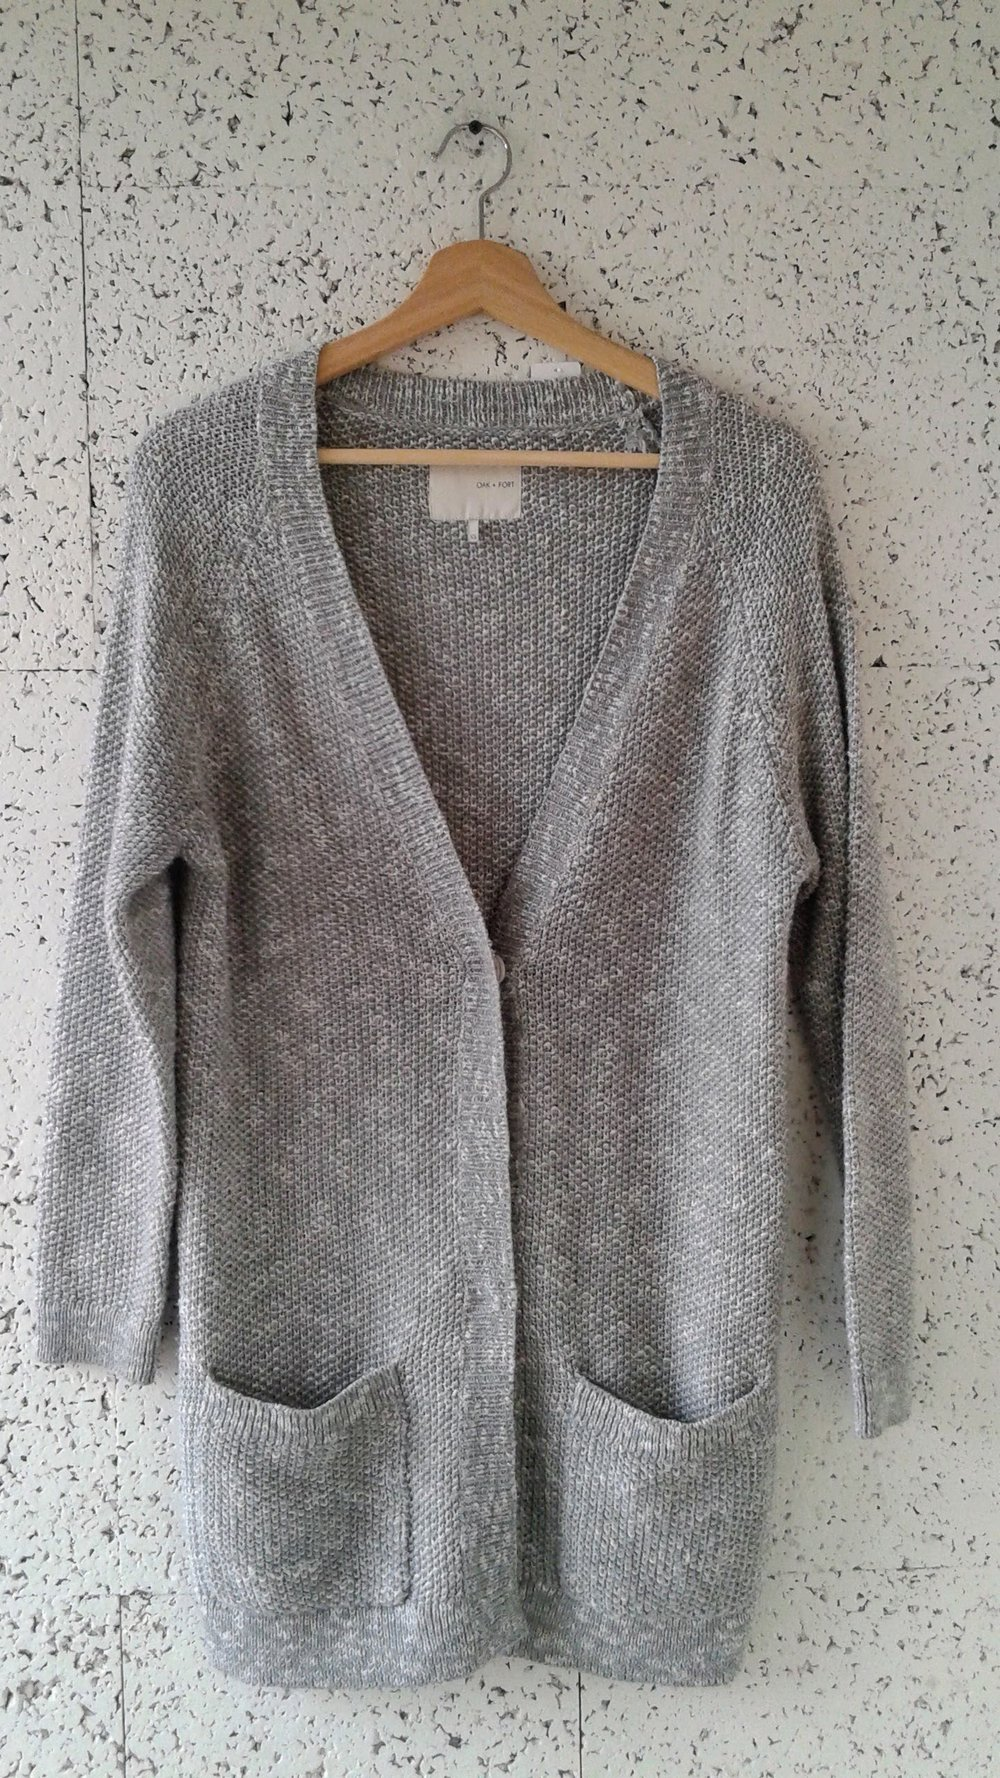 Oak + Fort sweater; Size XS, $48